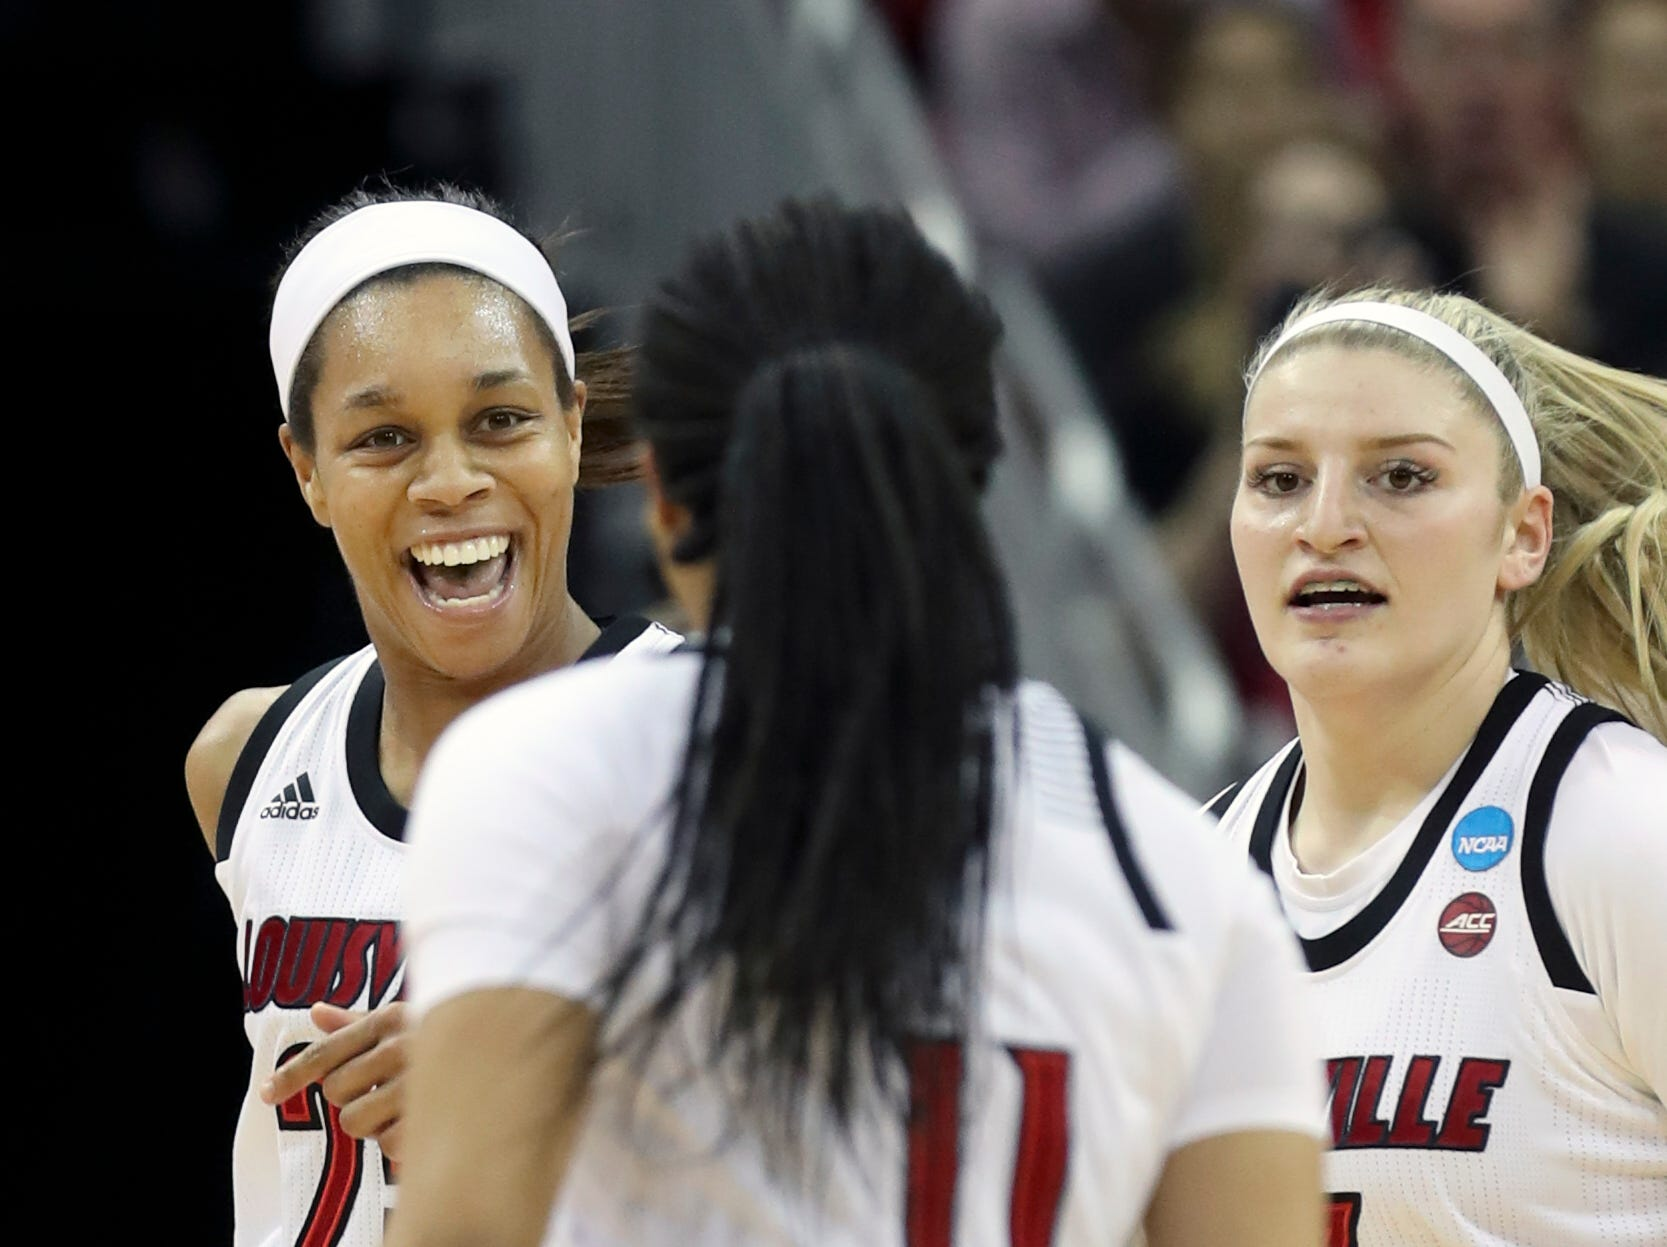 Louisville's Asia Durr, left, Sam Fuehring, right and Arica Carter celebrate after Michigan calls a timeout at the KFC Yum Center on March 24.